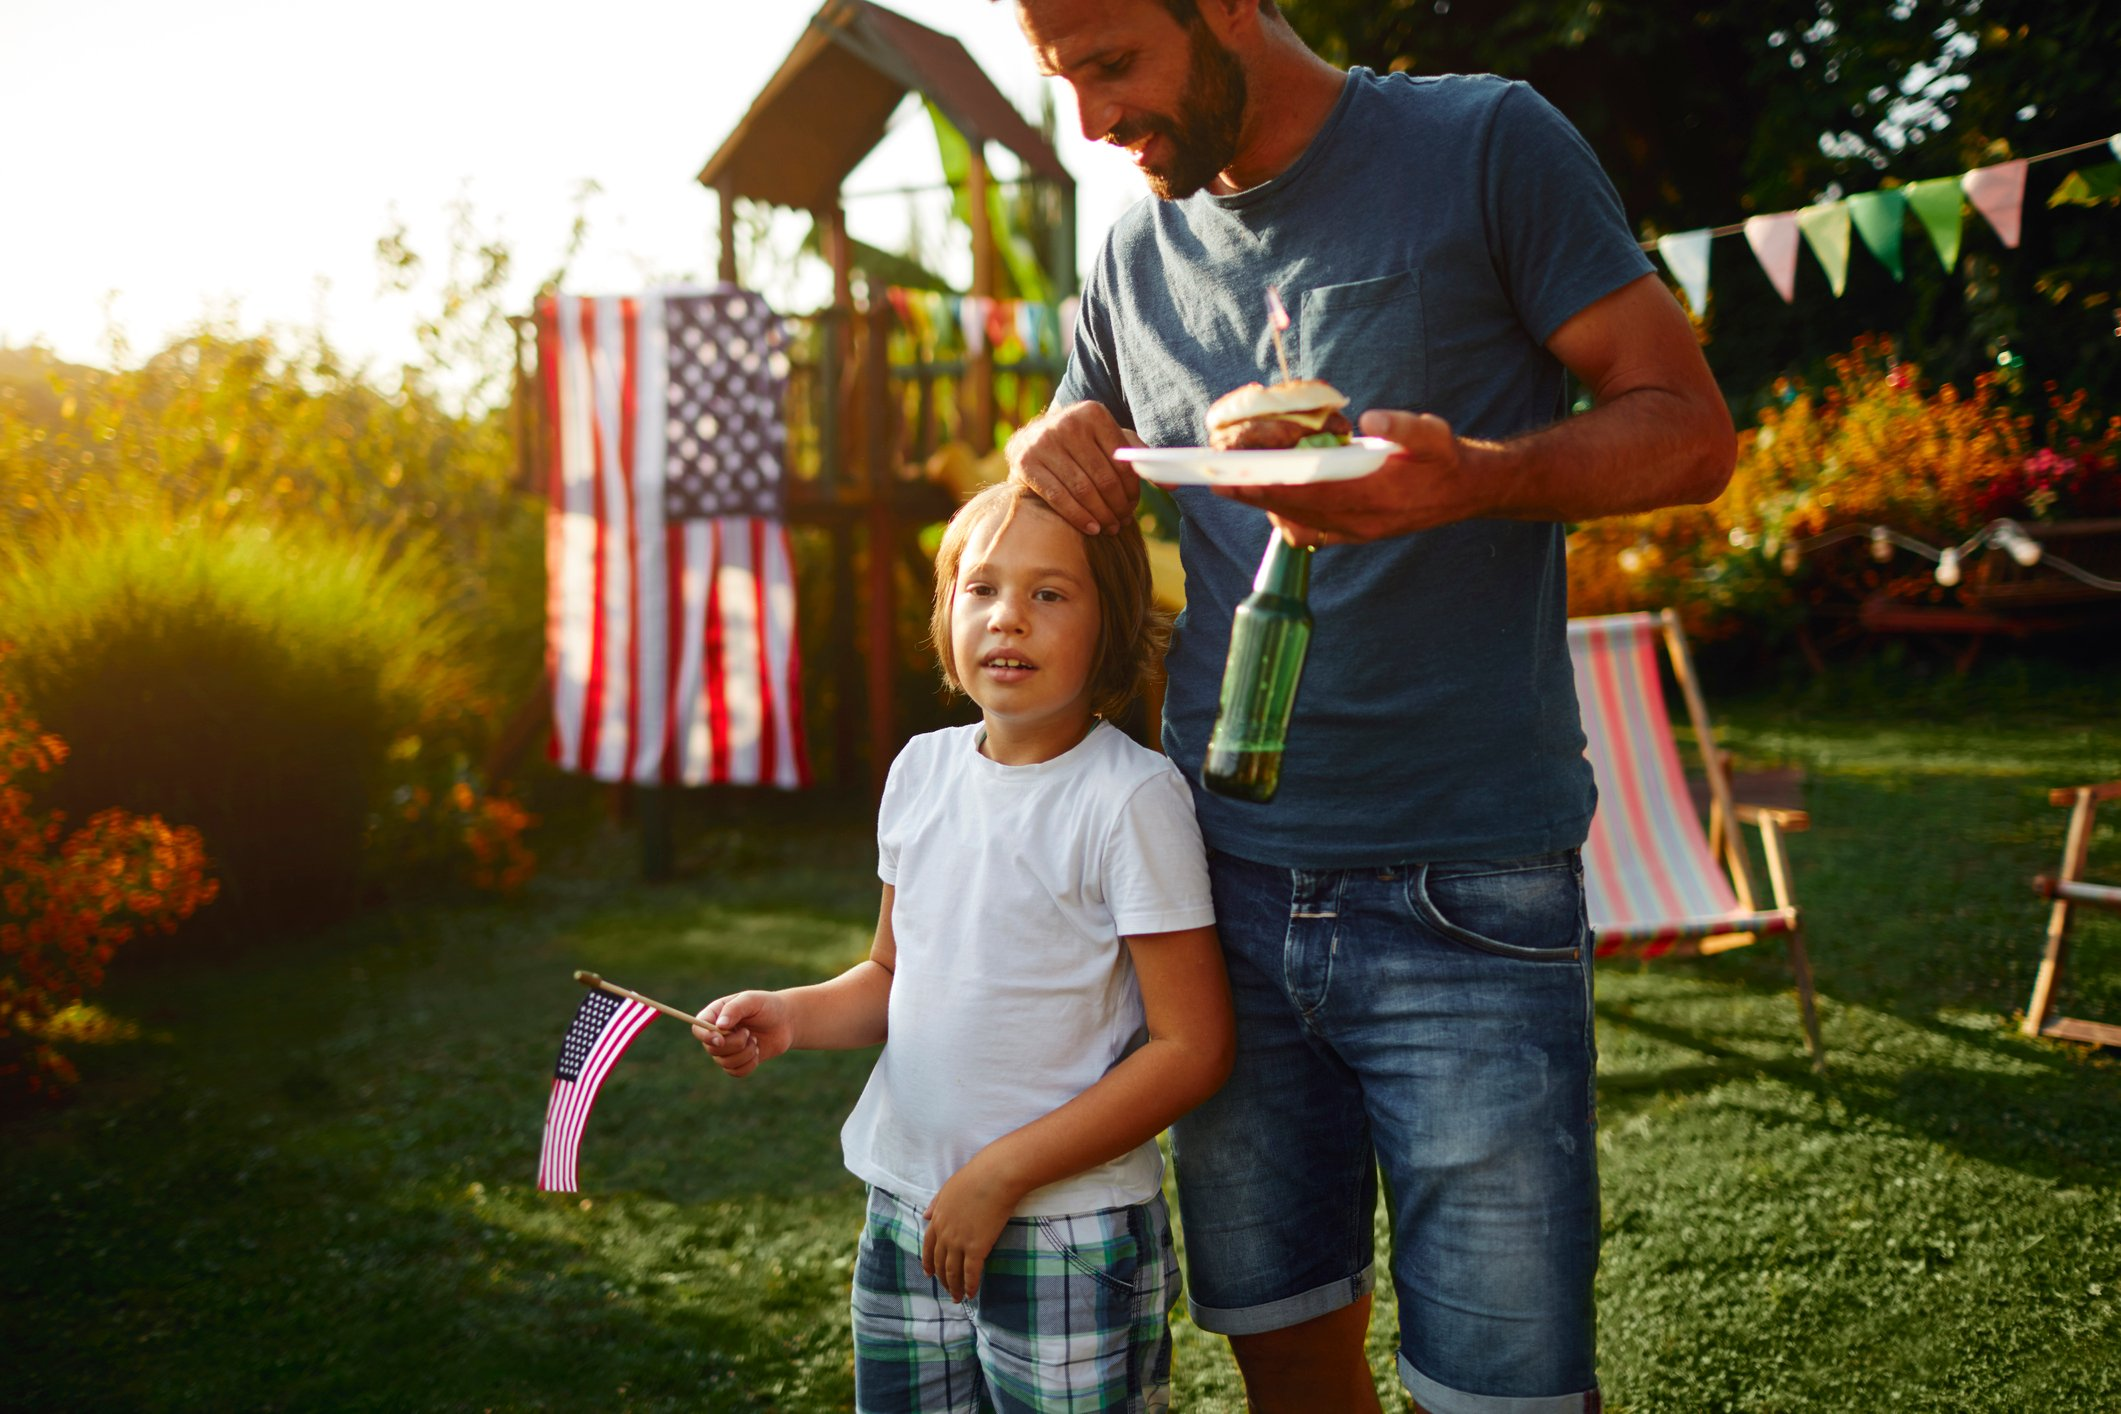 Family on picnic in back yard celebrating 4th of July - Independence Day. Father holding burger and his son holding american flag.